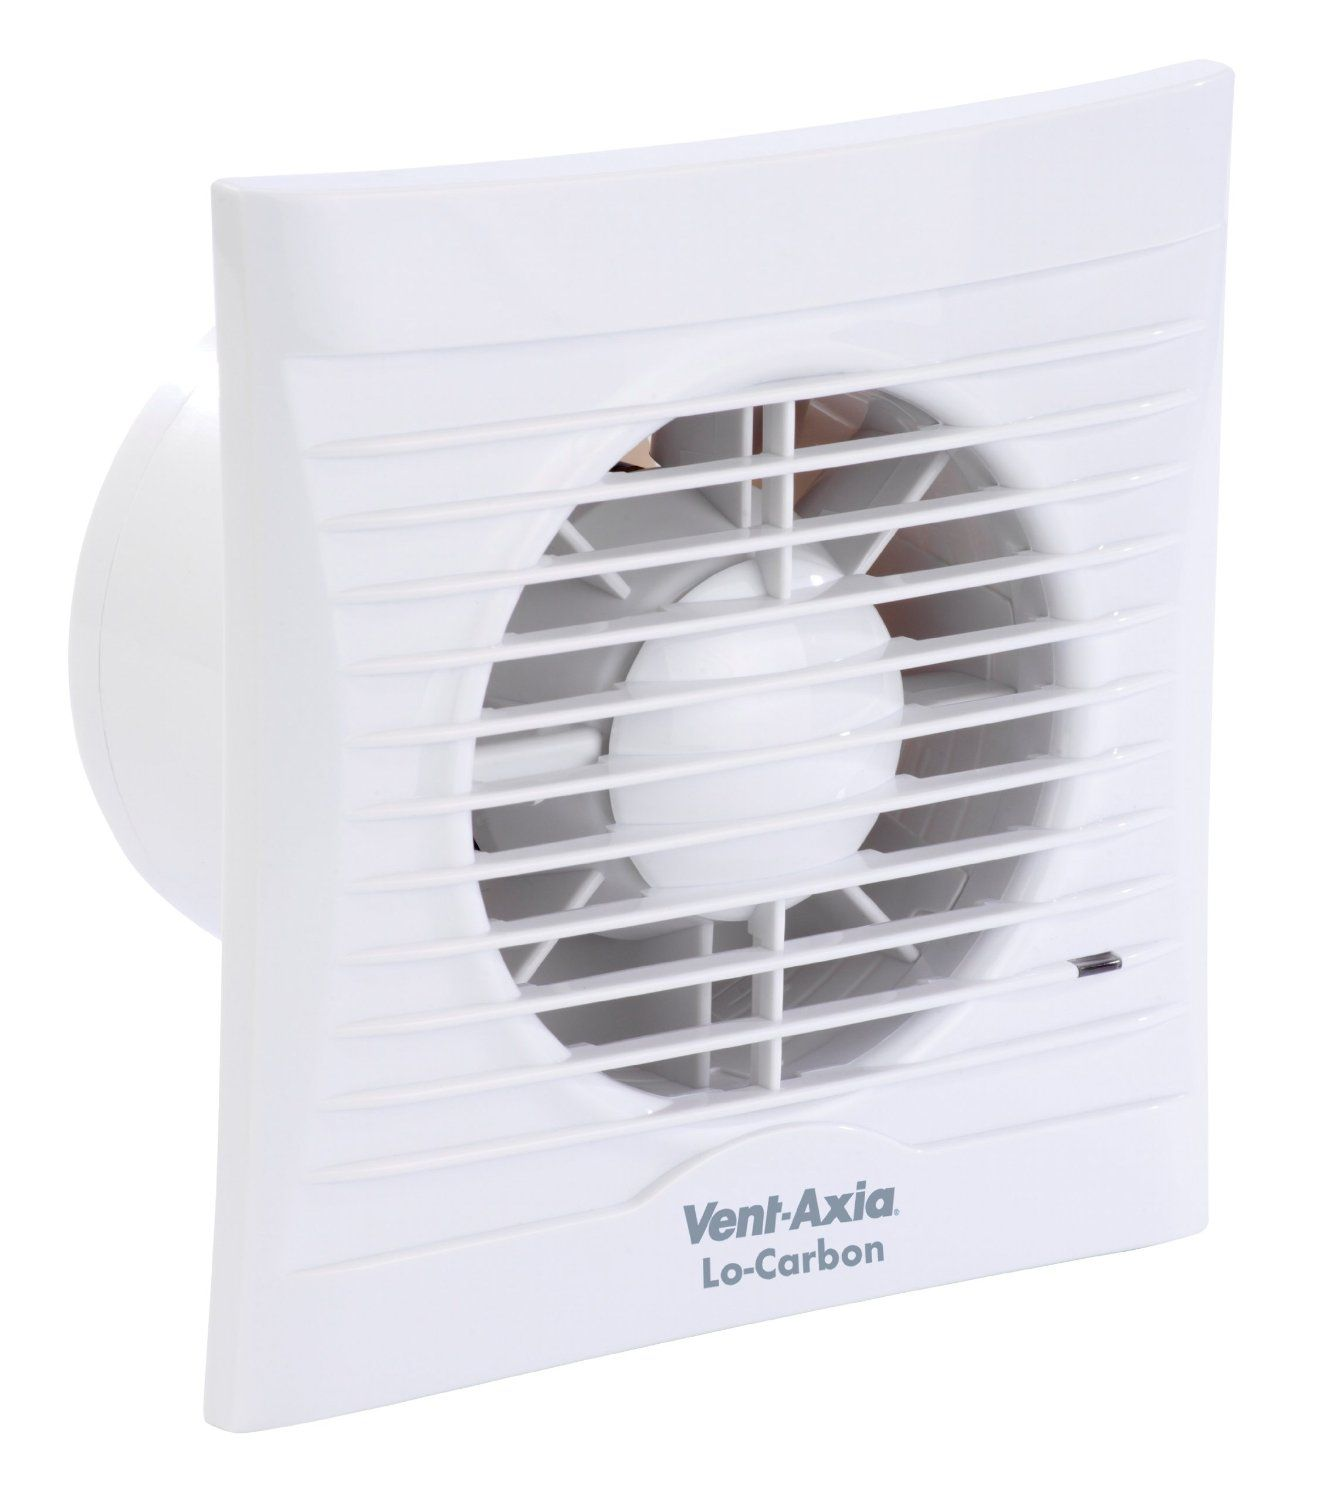 Vent Axia 100t Lo Carbon Silhouette Amazon Co Uk Diy Tools Extractor Fans Bathroom Extractor Fan Fans For Sale